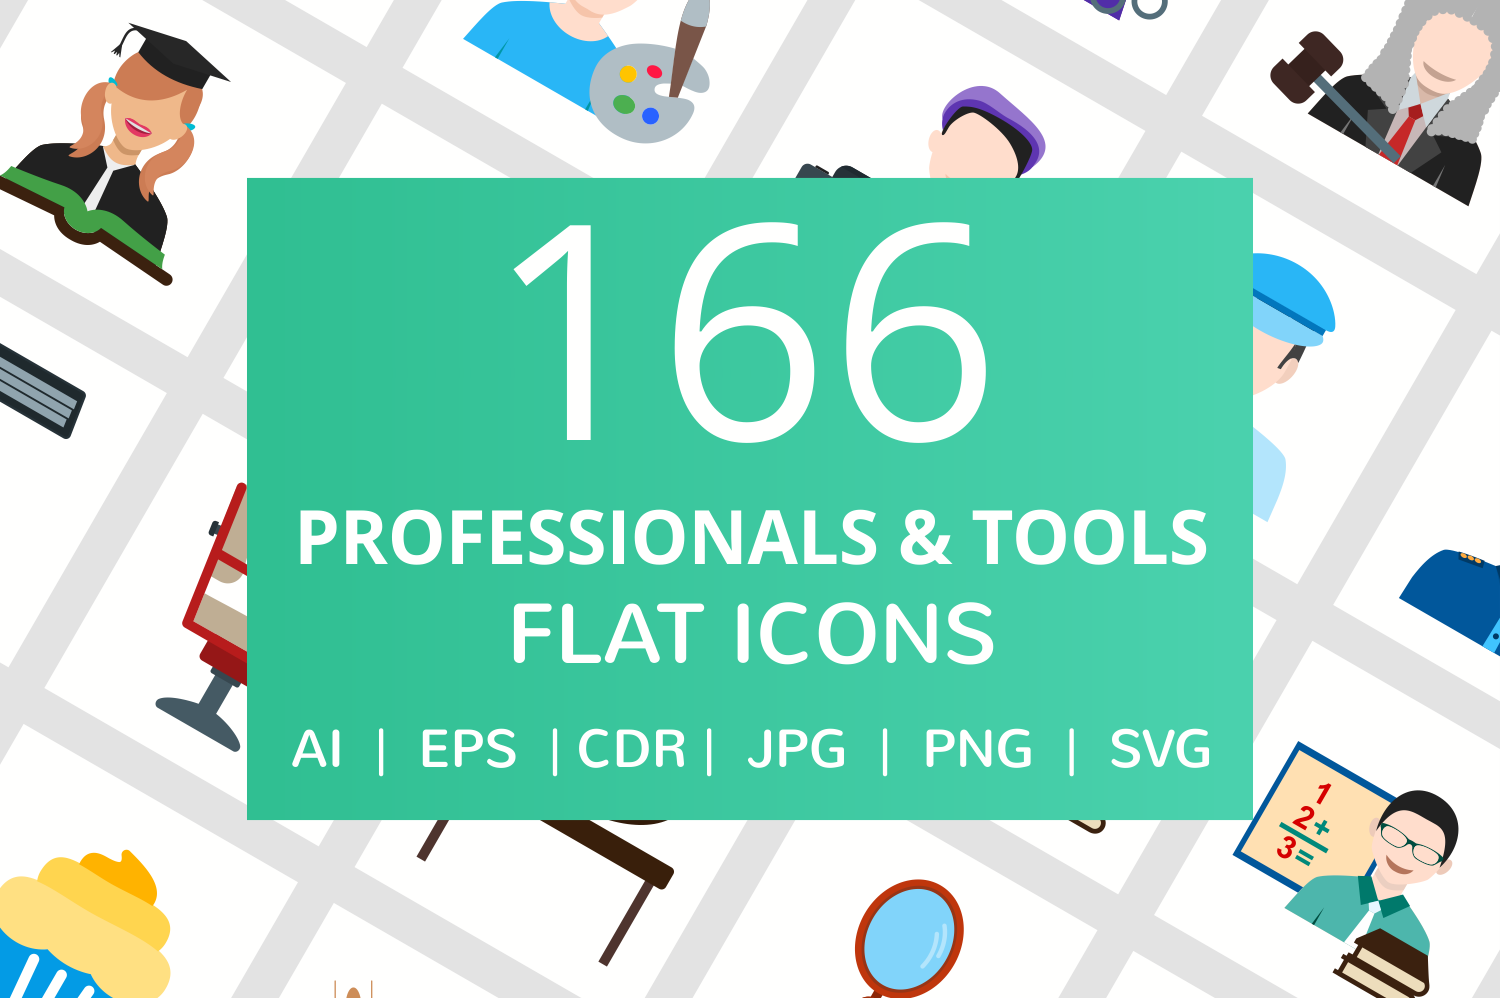 166 Professionals & their tools Flat Icons example image 1